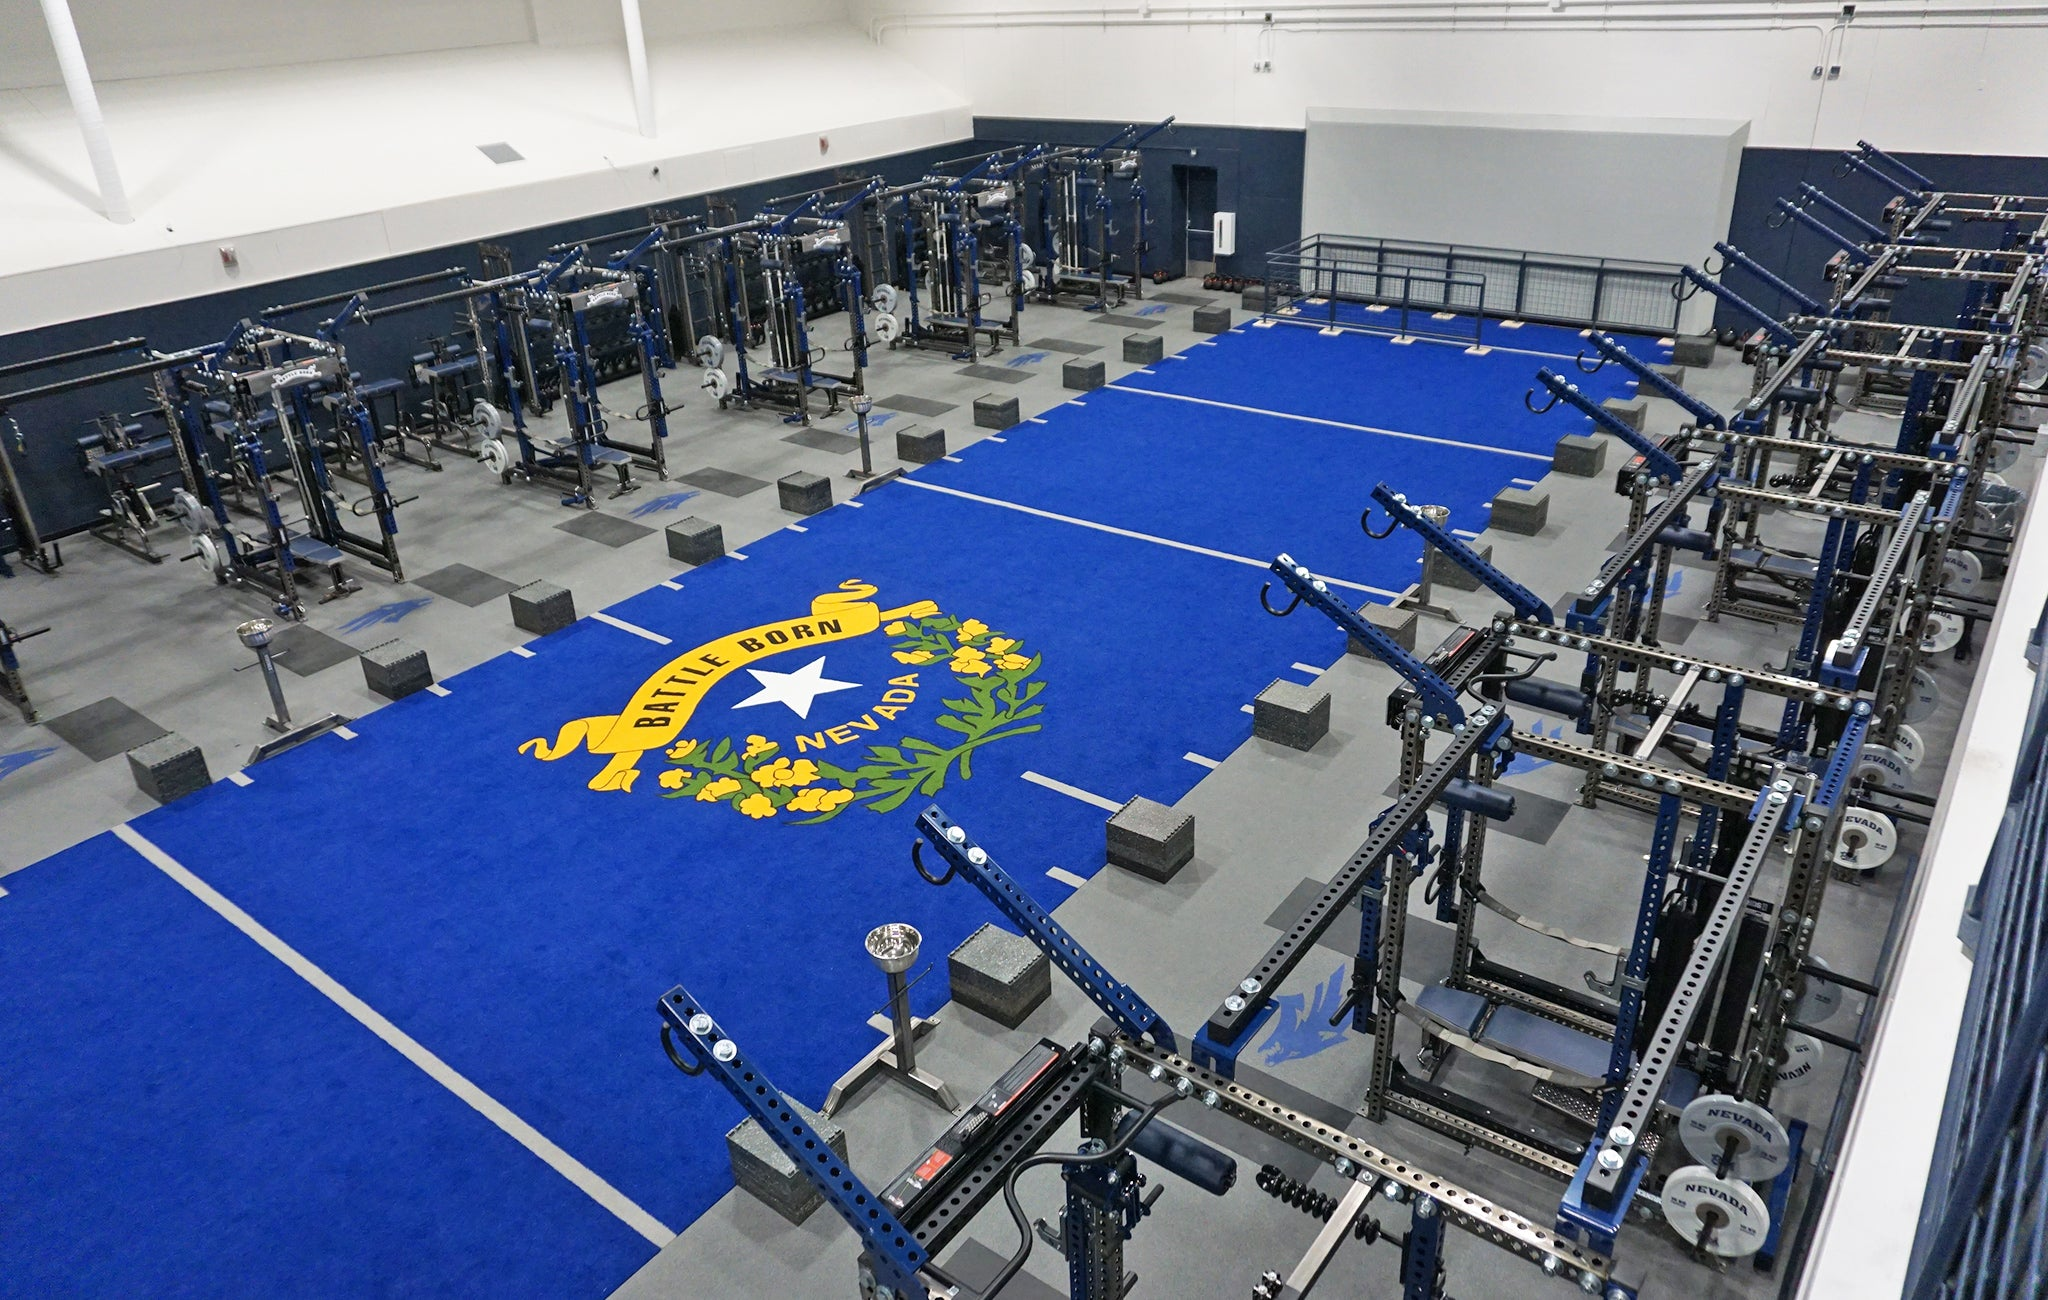 University of Nevada strength and conditioning